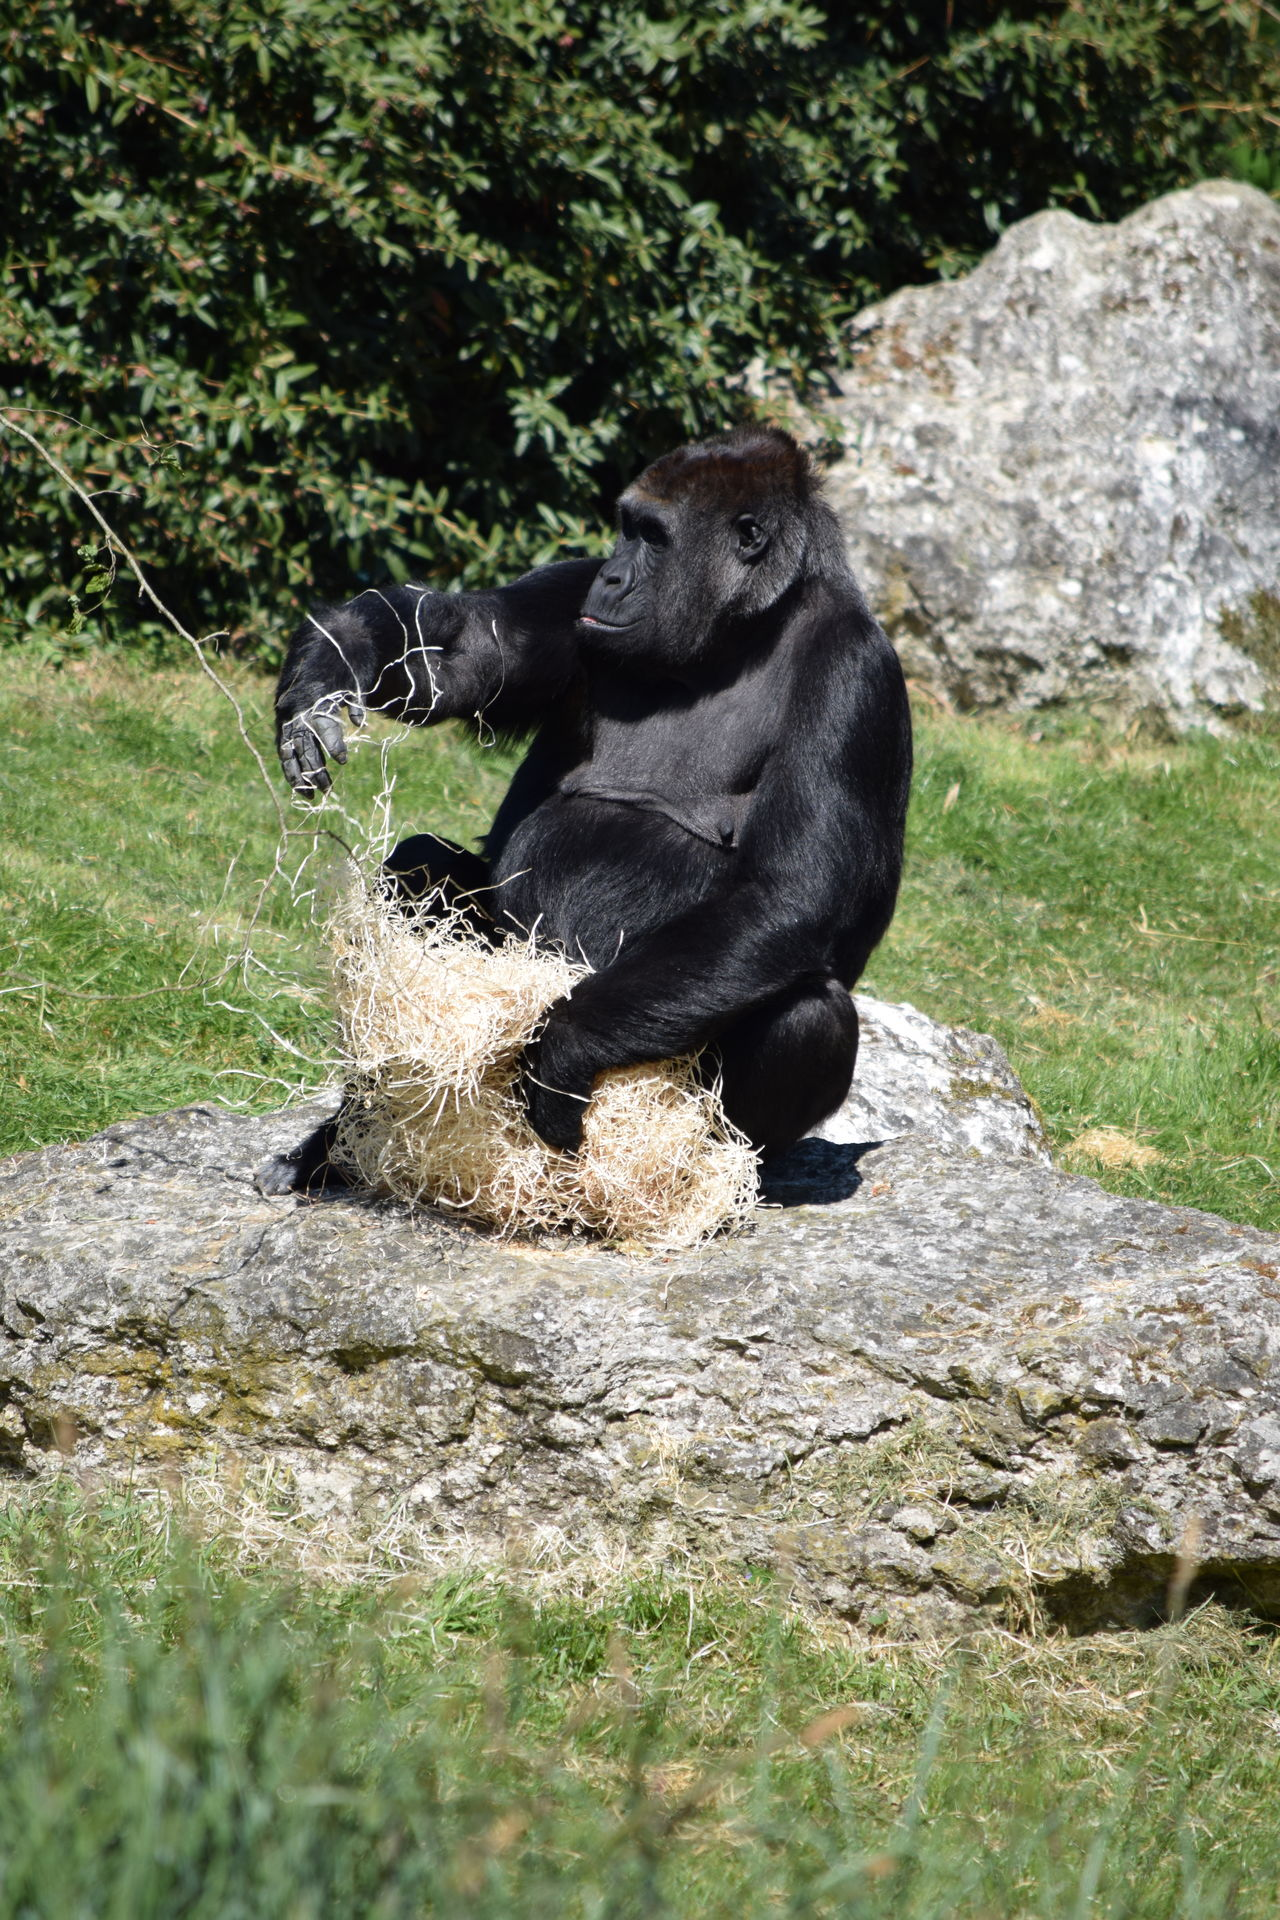 gorilla Animal Themes Animal Wildlife Animals In The Wild Beauval Day Female Field Gorilla Gorille Grass Green Male Mammal Monkey Nature No People One Animal Outdoors Power Primate Rock - Object Sitting Strong Water Zoo